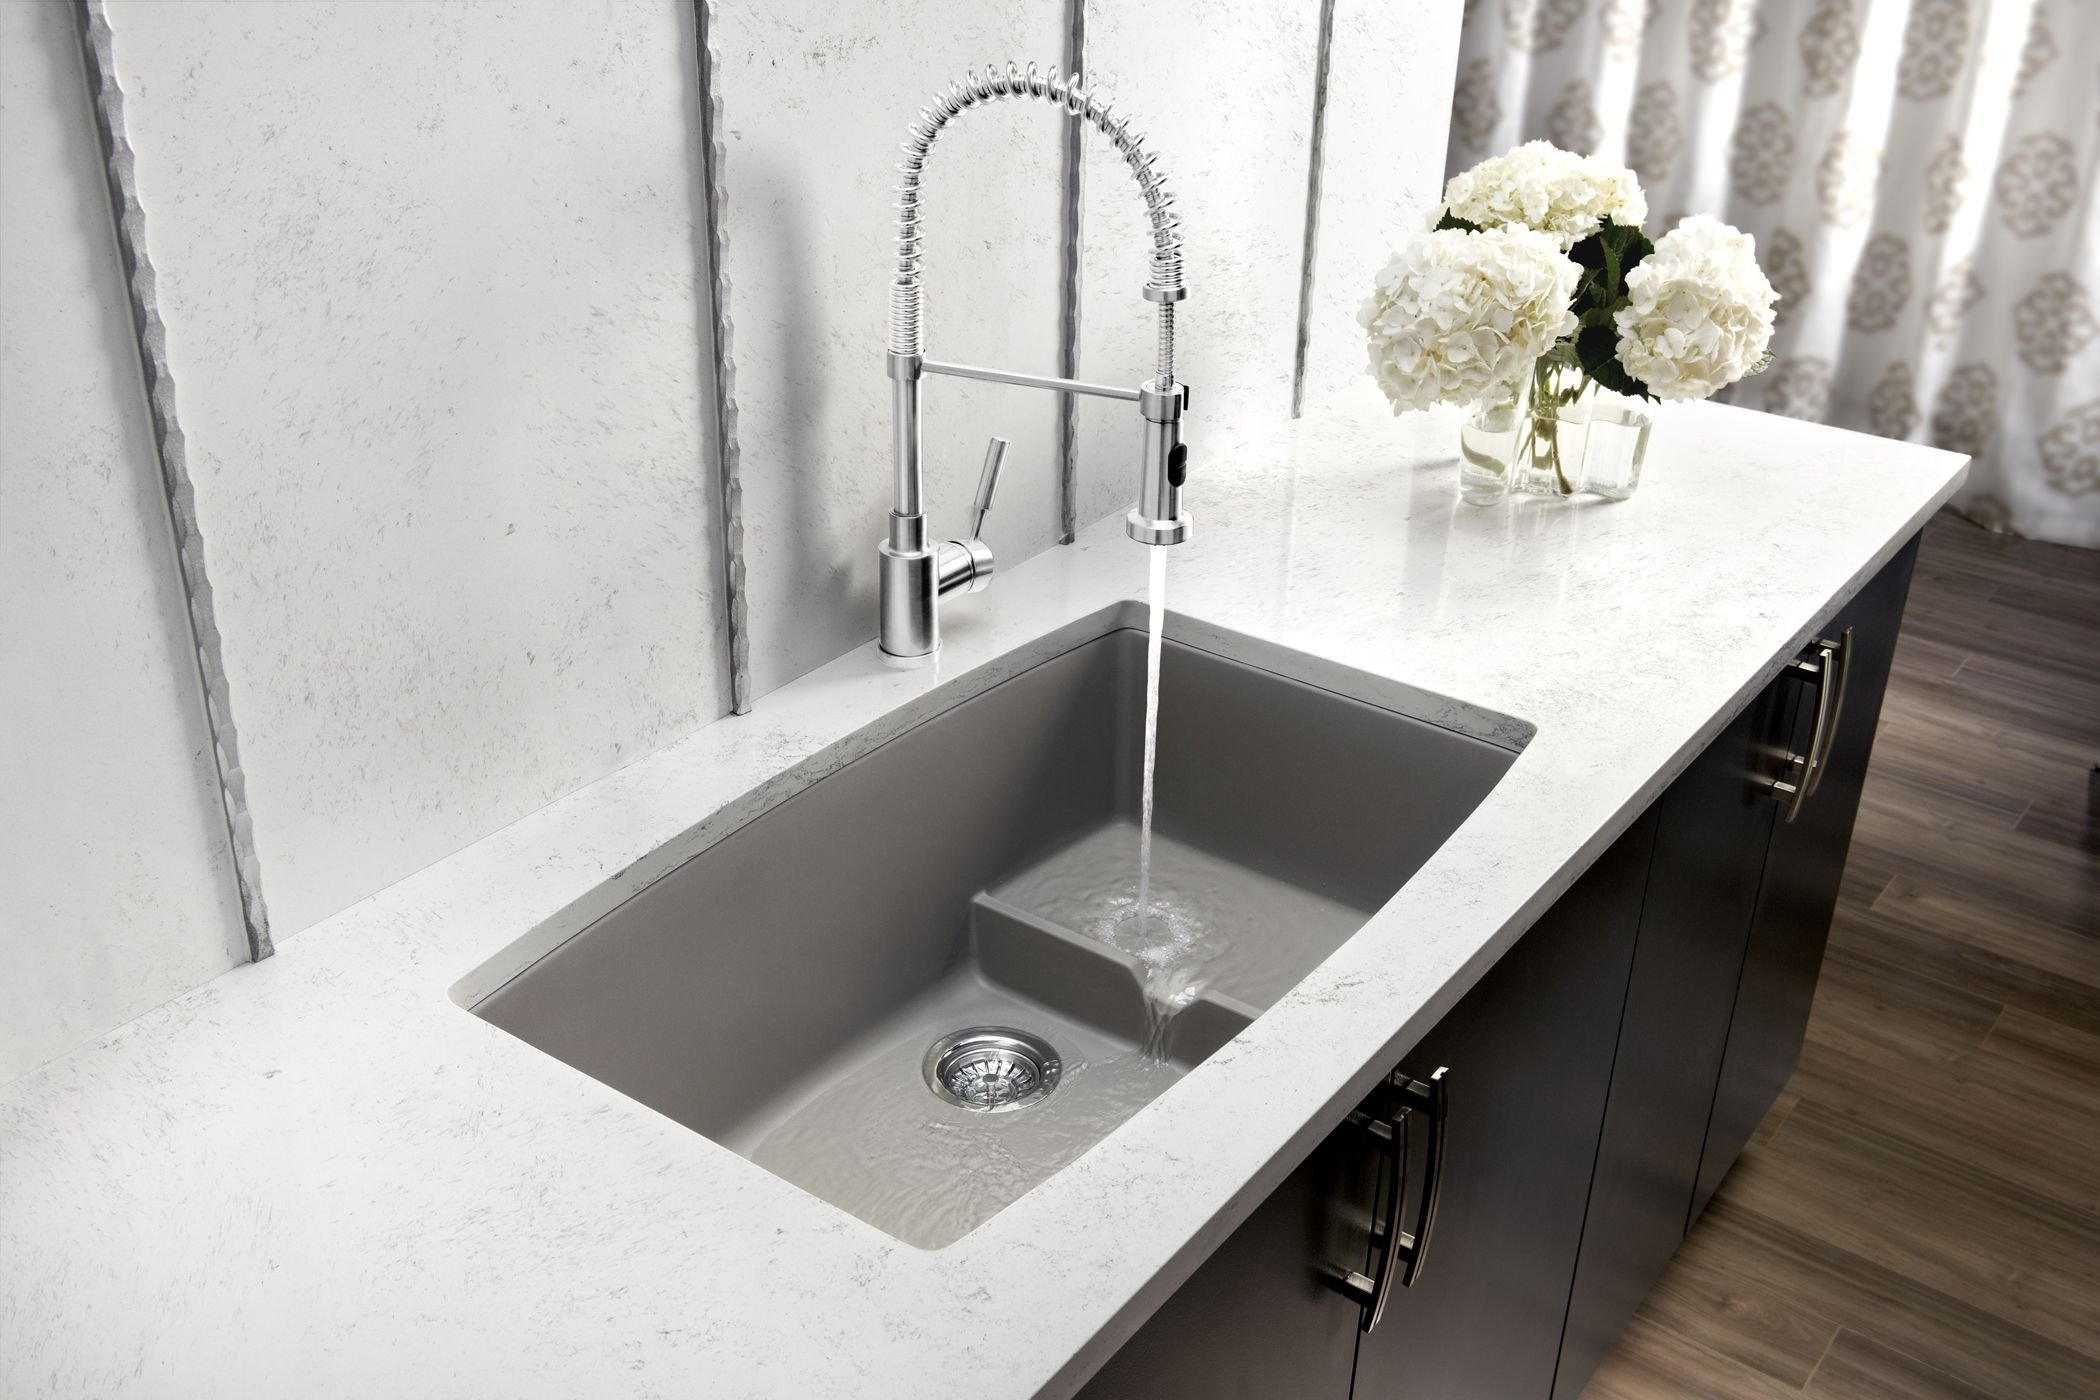 Modern Kitchen Sinks modern kitchen designs: blanco truffle faucet and sink | kitchen